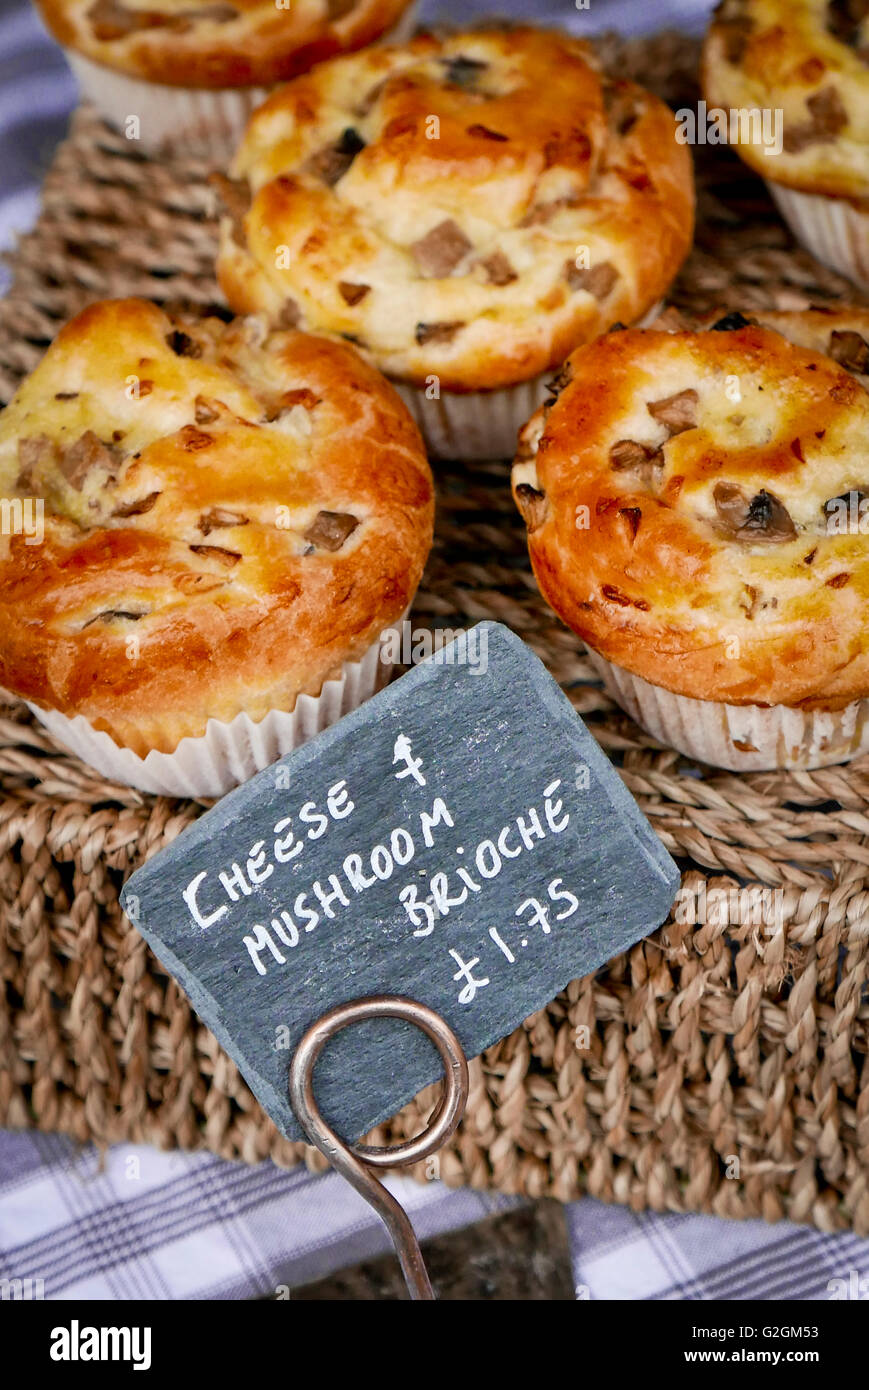 Cheese and mushroom brioche on a stall at Wanstead monthly Farmers market, Wanstead, London E11 Stock Photo